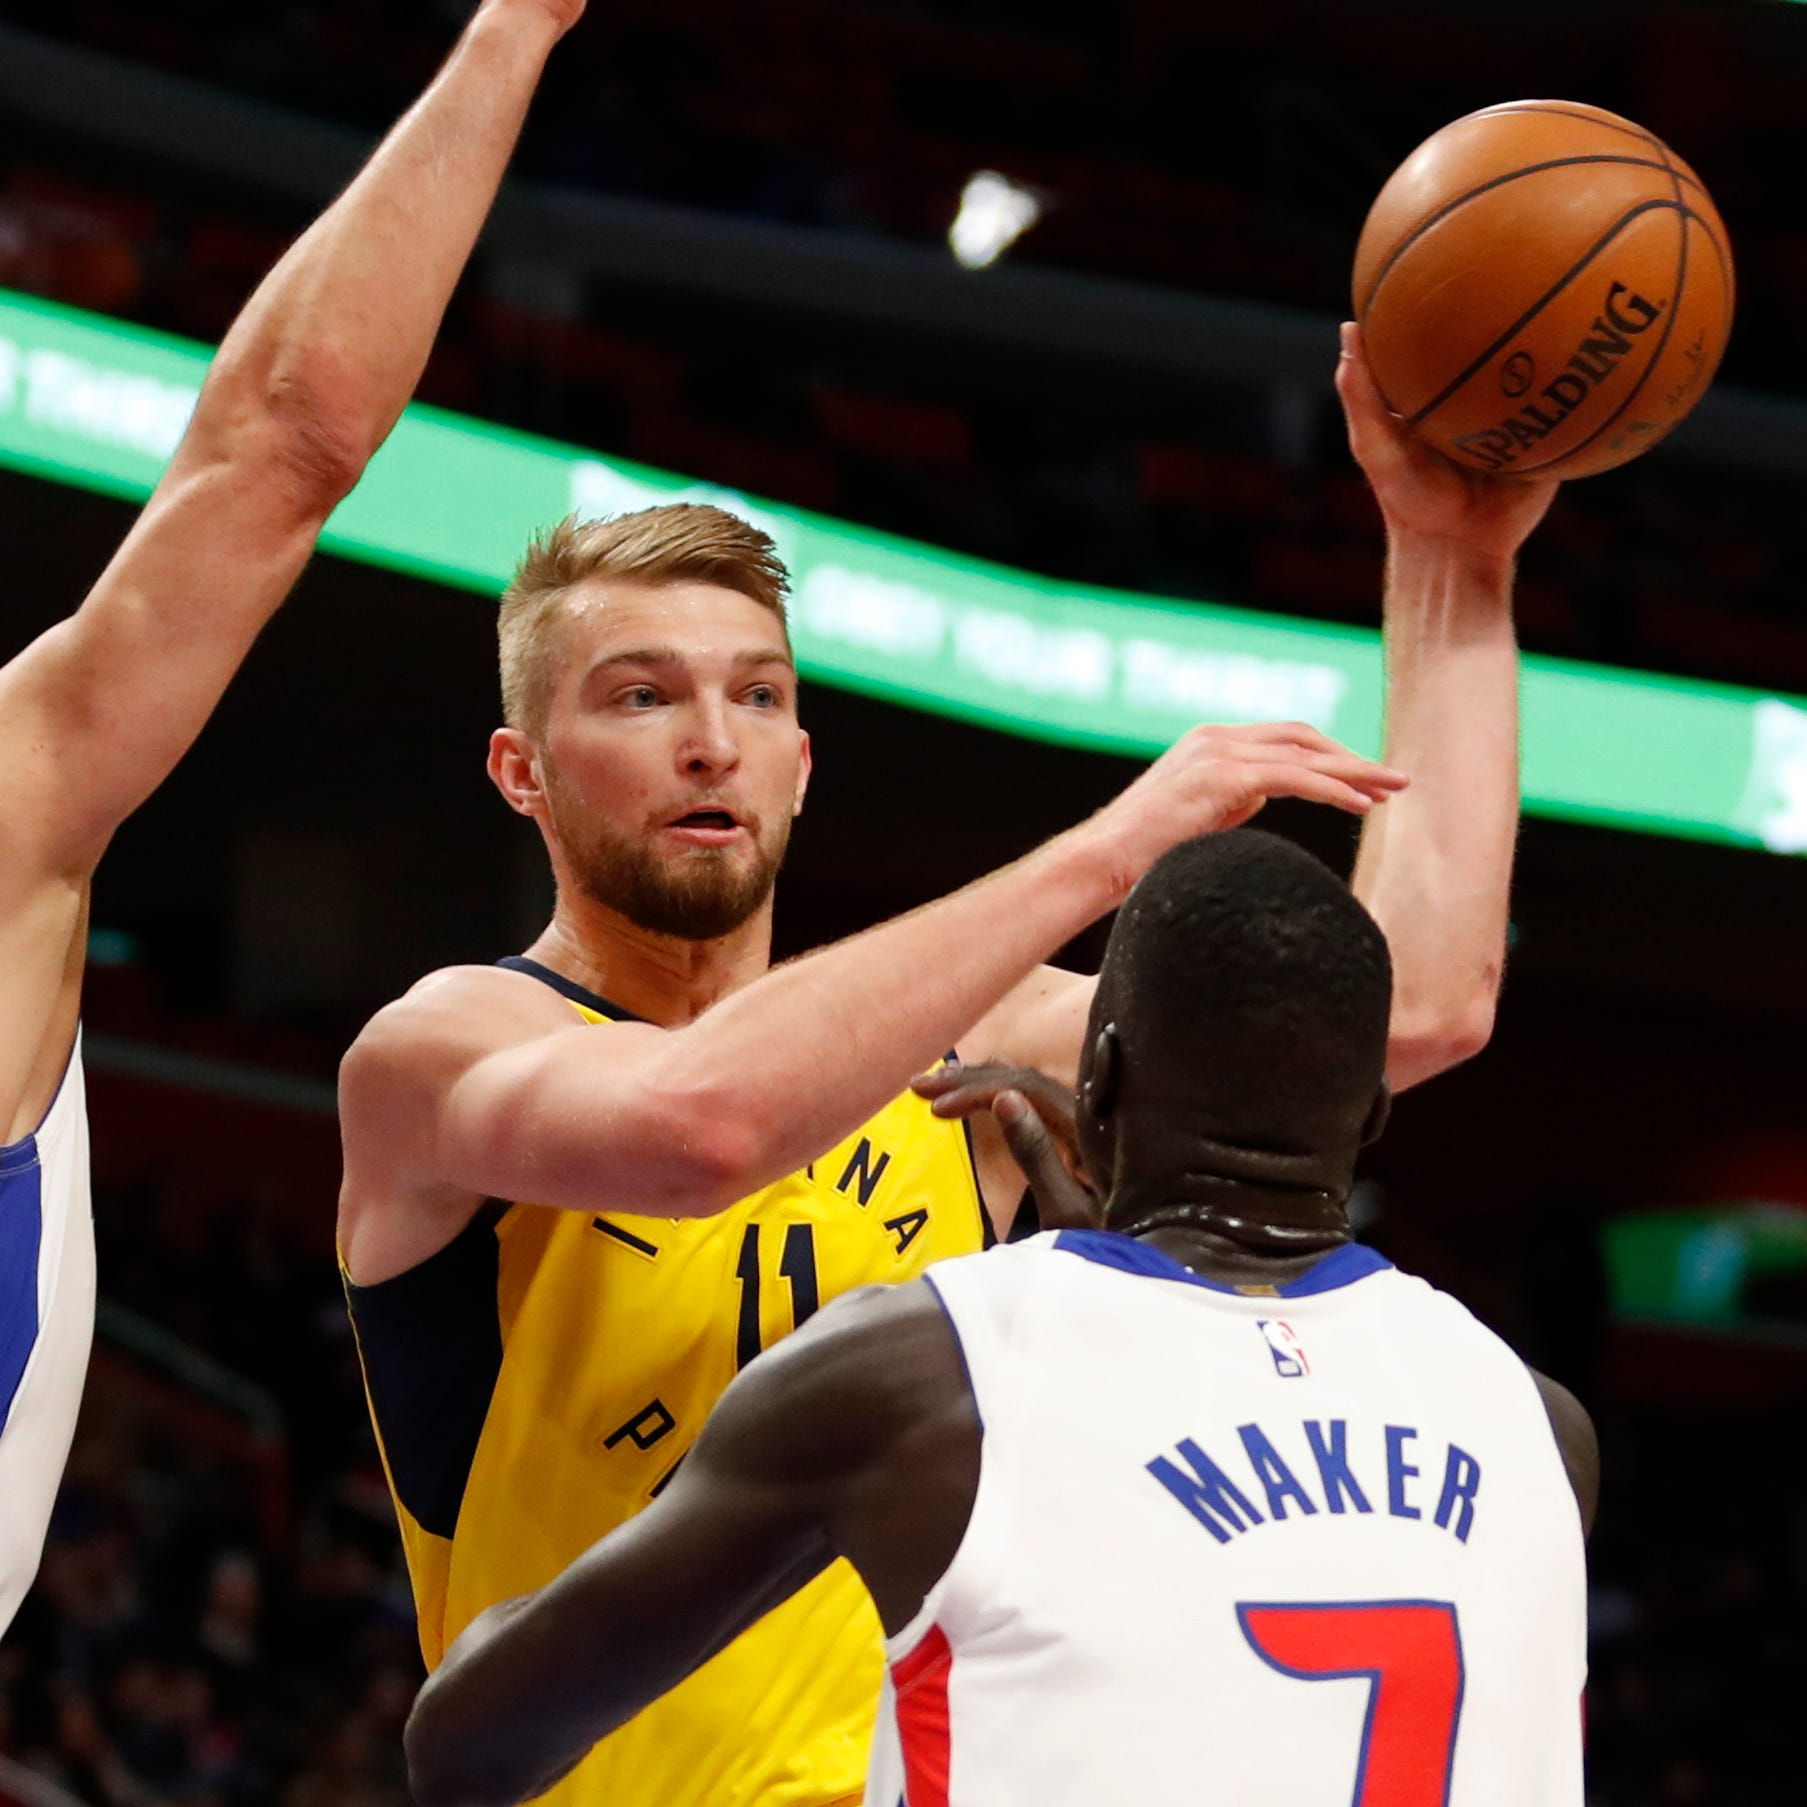 Domantas Sabonis nearing return from injury, and Pacers sure could use him